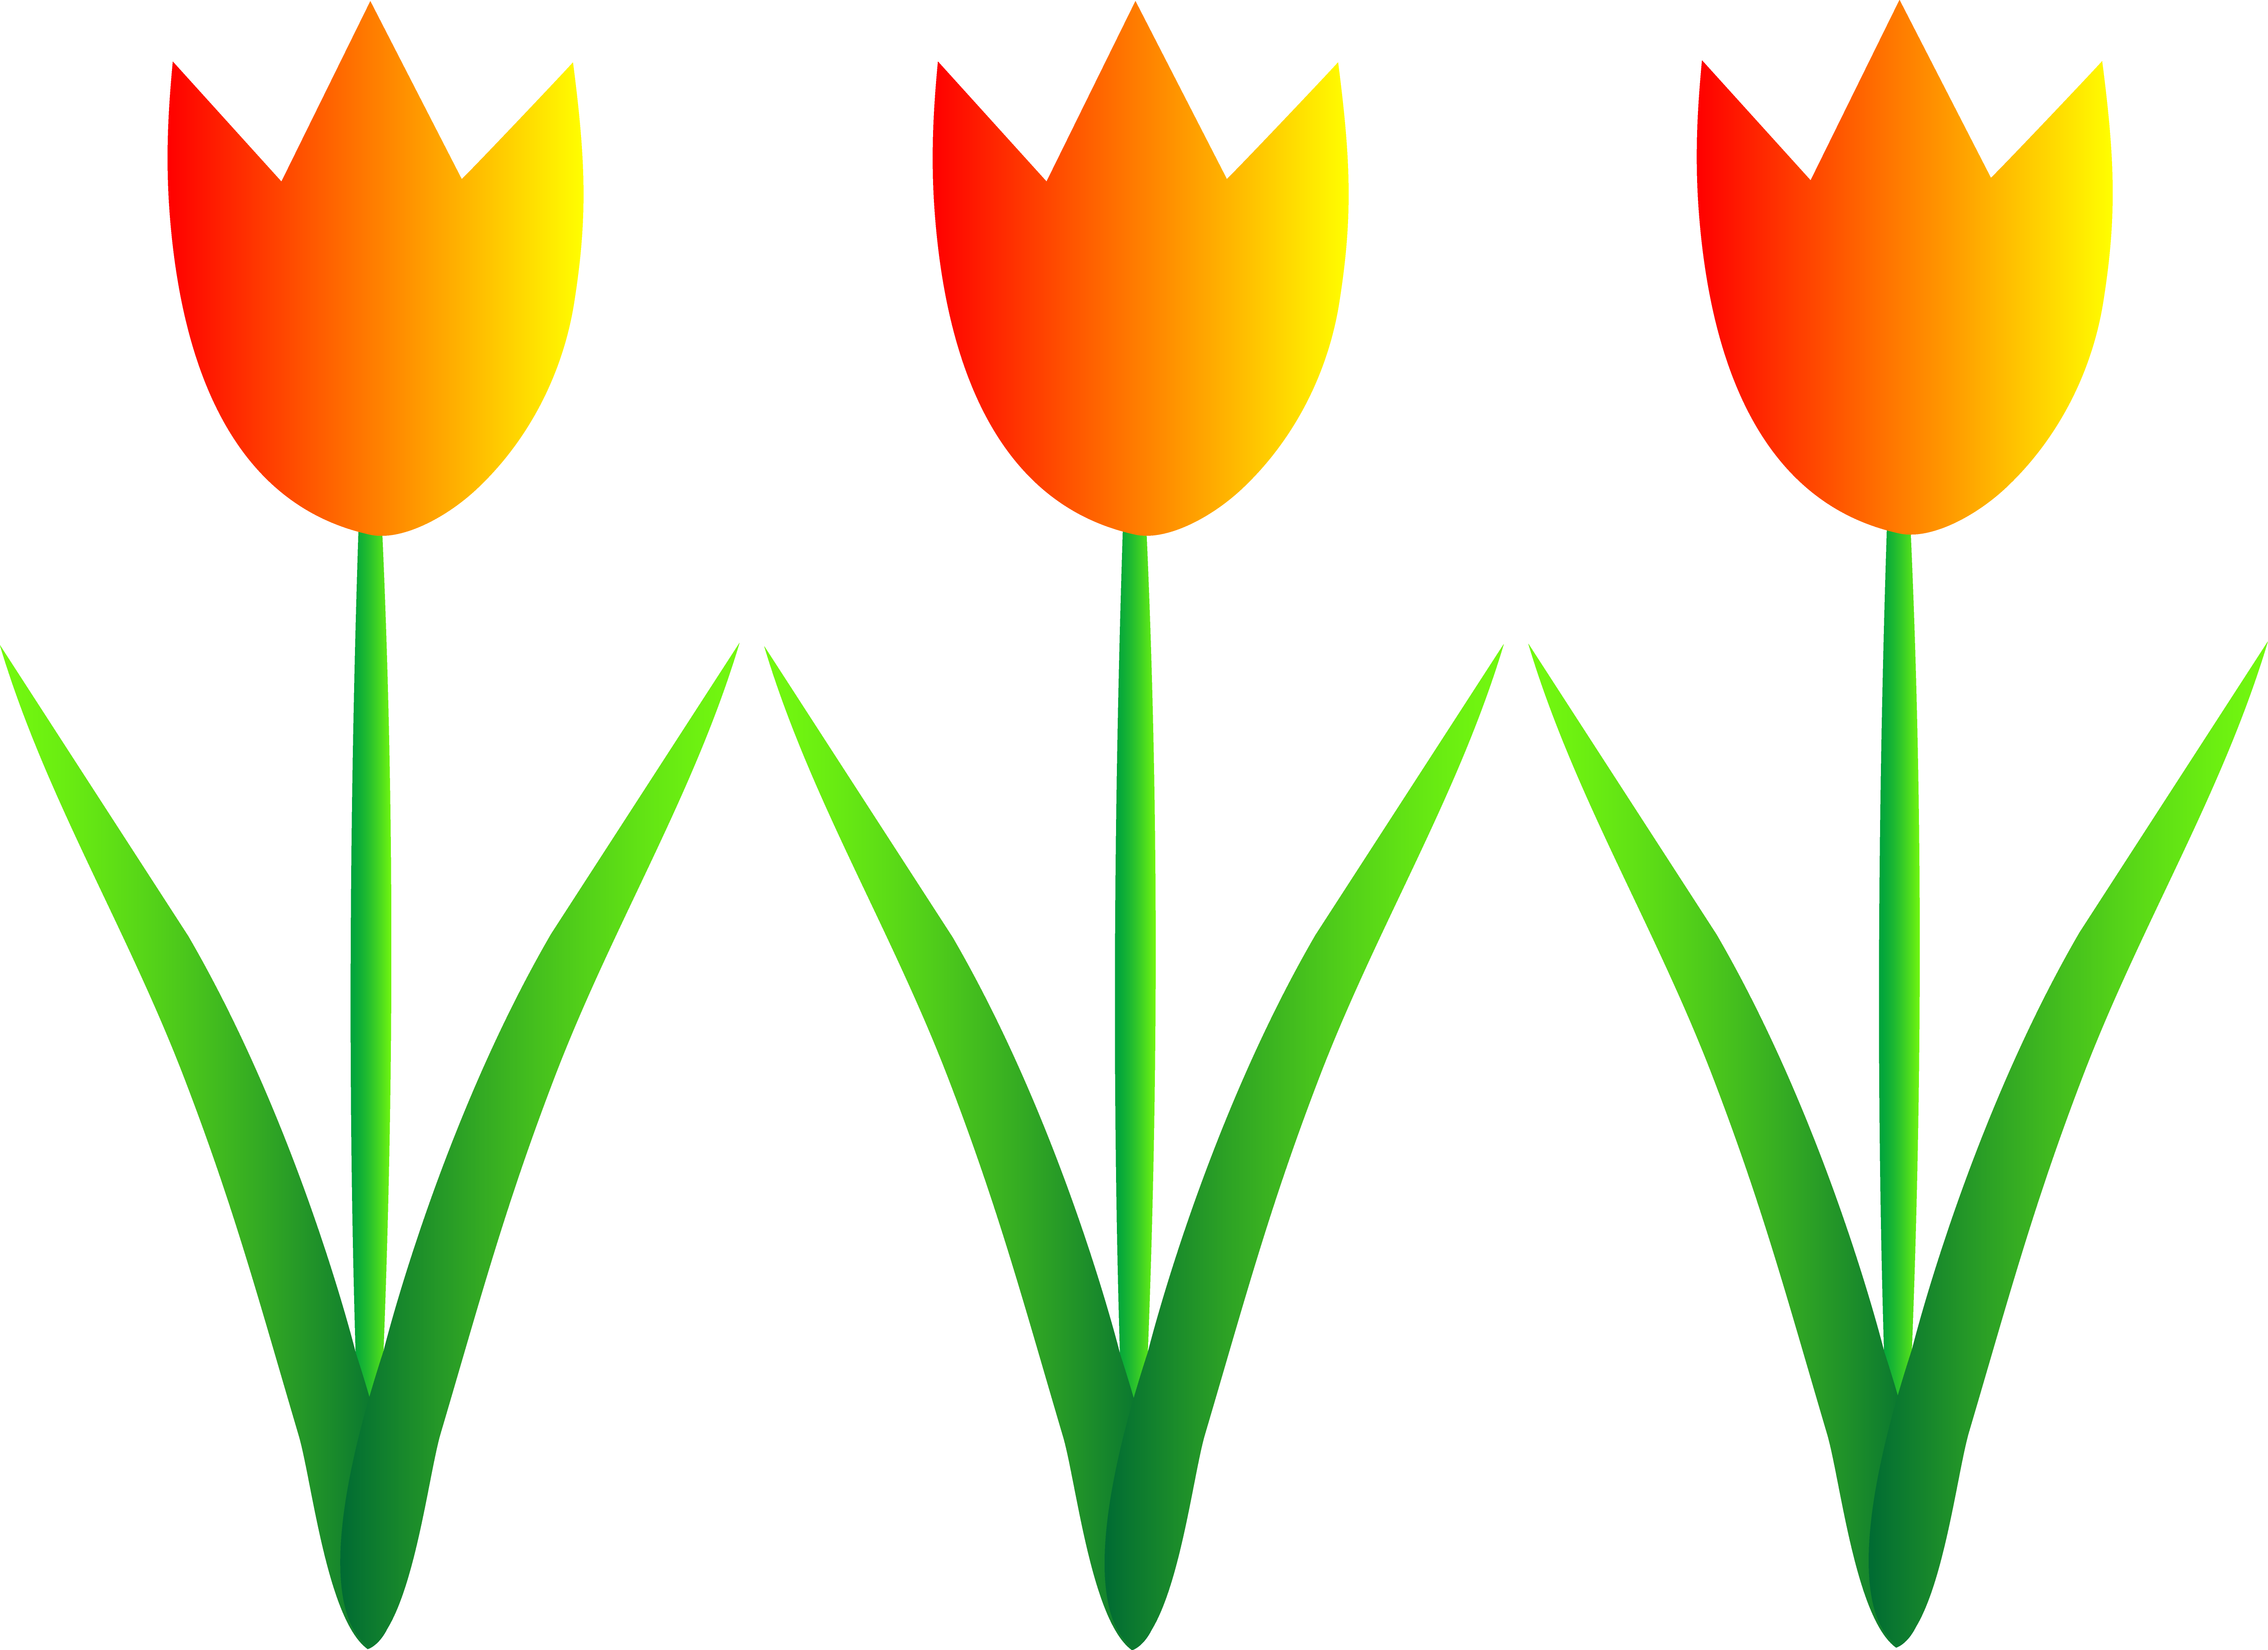 Transparent spring tulip. Free season clipart download